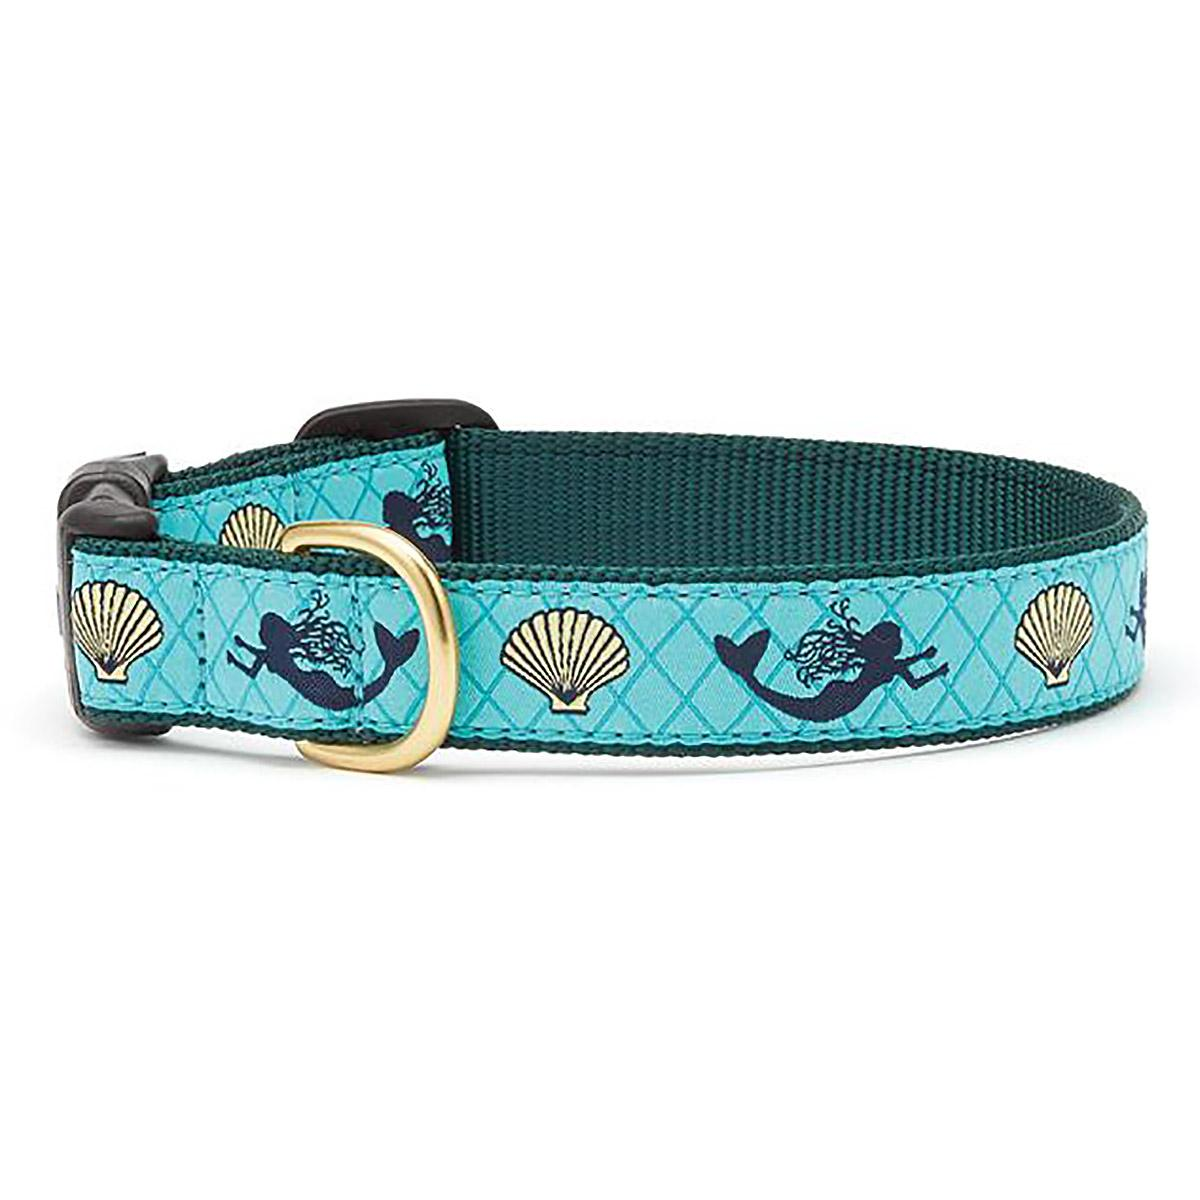 Mermaid Dog Collar by Up Country